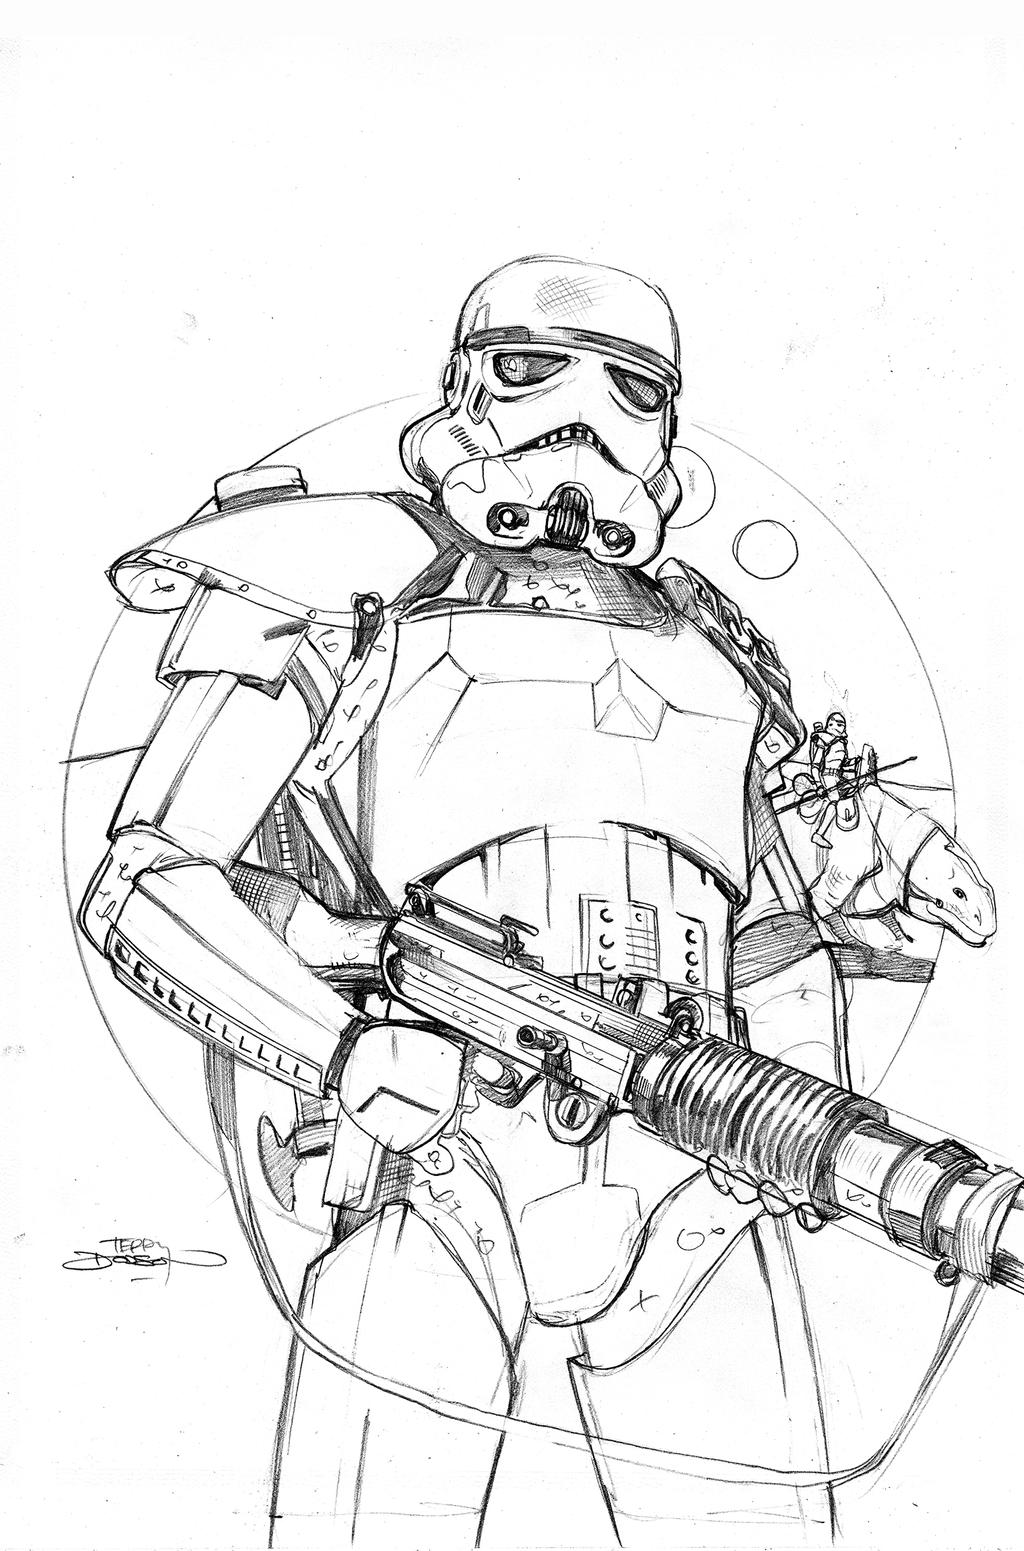 Star Wars 20 Cover Pencils by TerryDodson on DeviantArt